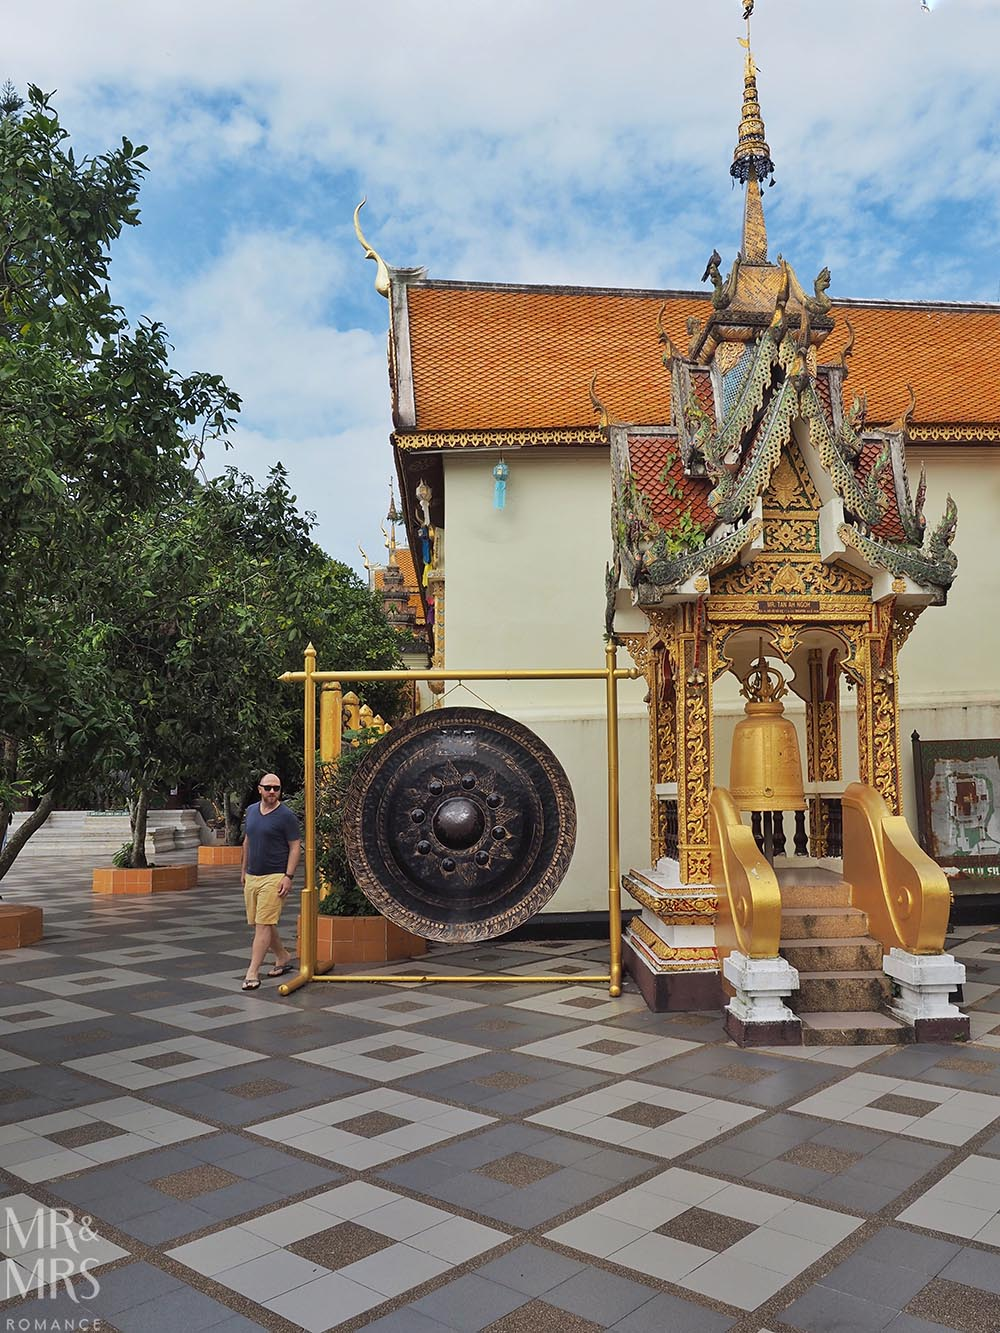 Bangkok and Chiang Mai, Thailand - Weekly Edition - Royal Palace Temple